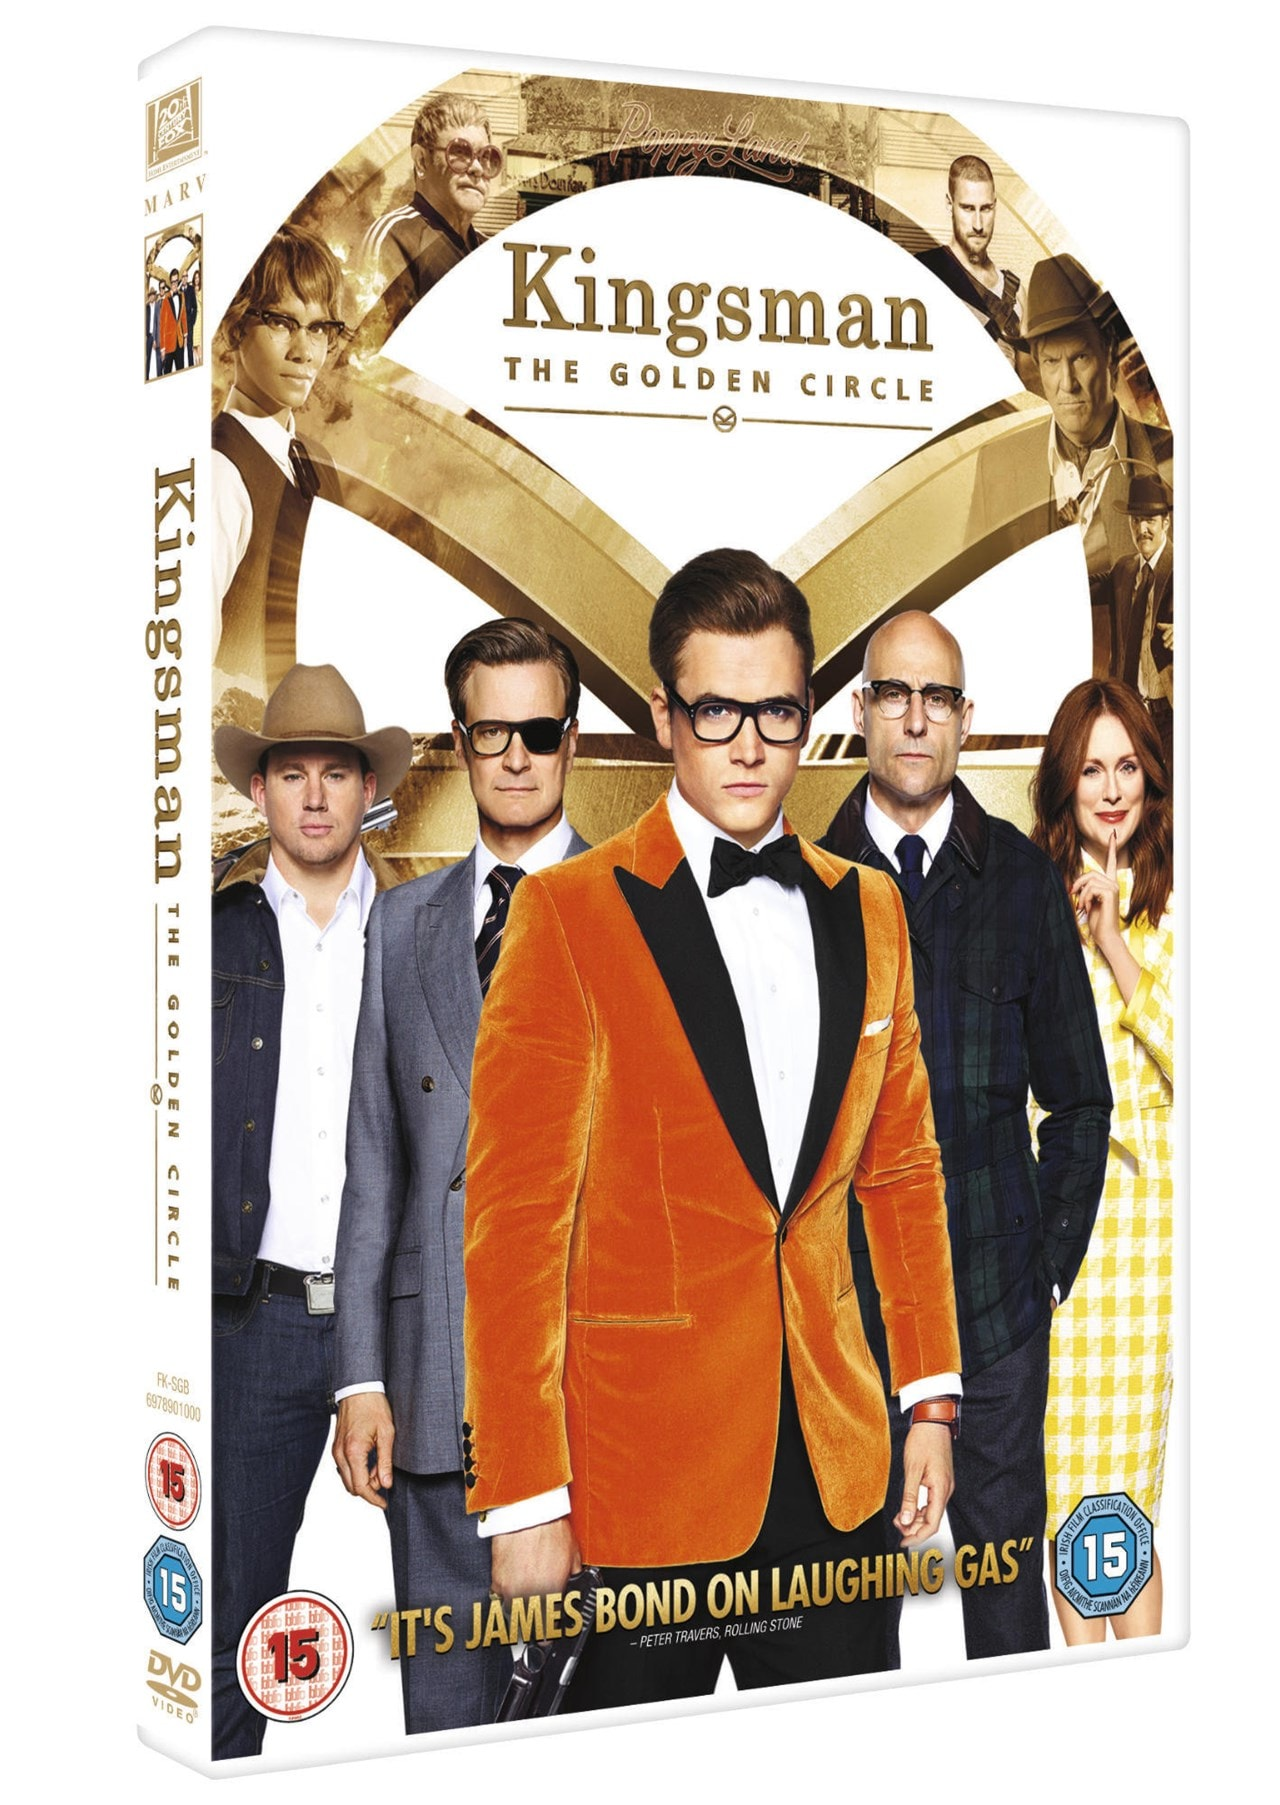 Kingsman: The Golden Circle - 4